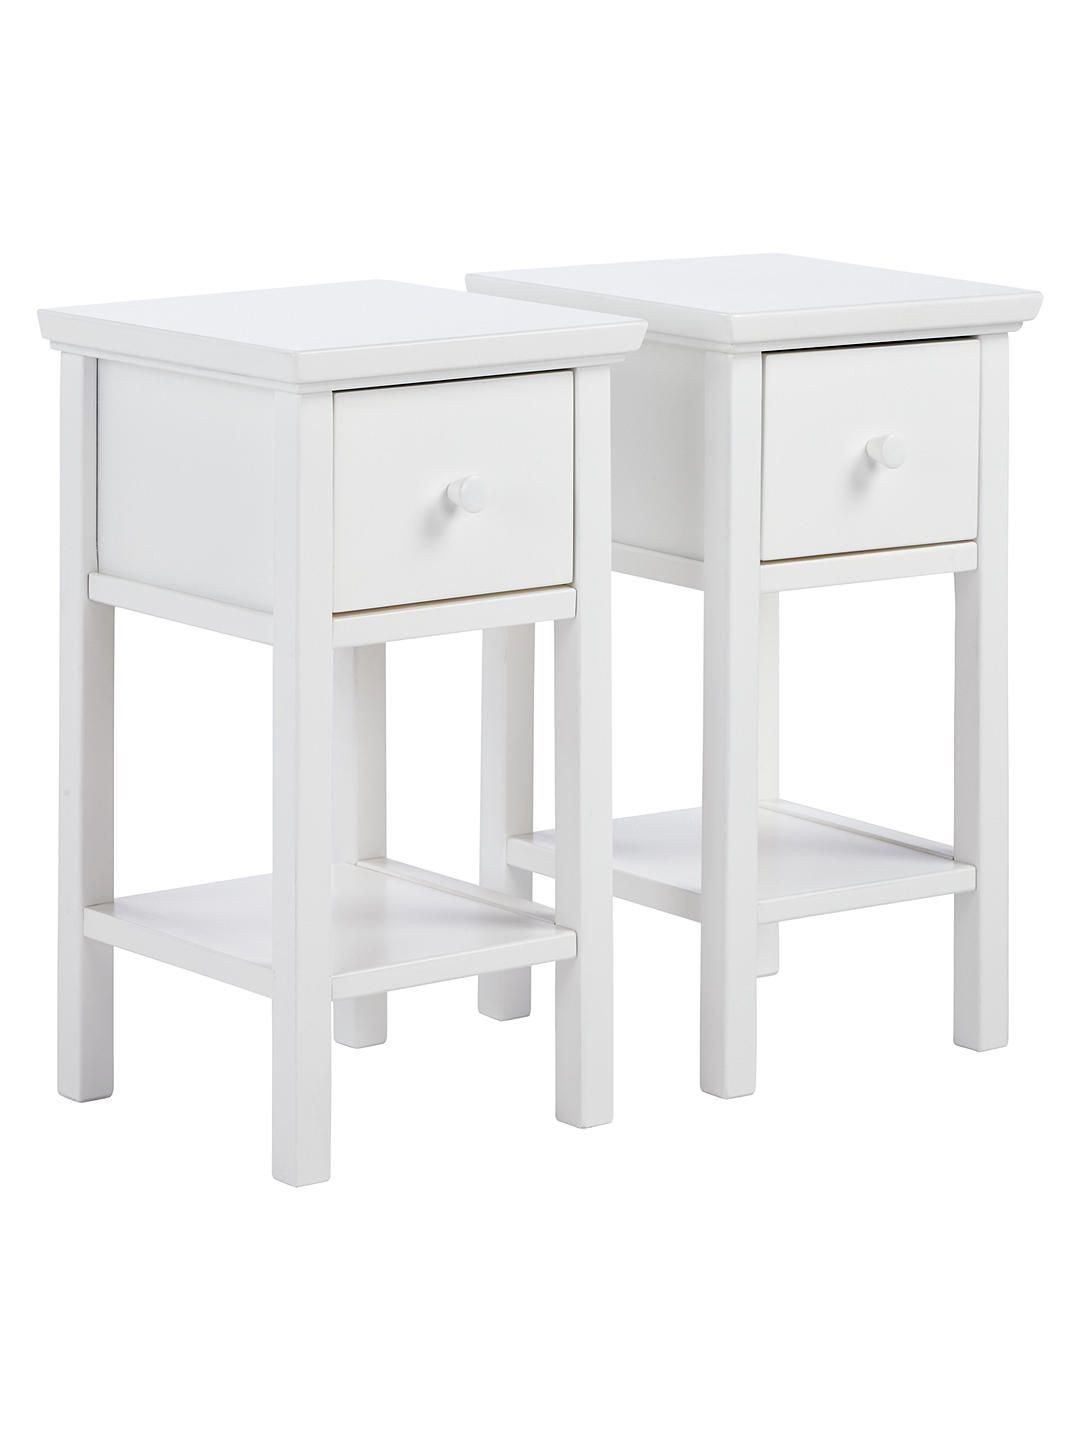 Small Bedroom Side Tables Best Of John Lewis & Partners Wilton Set Of 2 Bedside Tables Grey